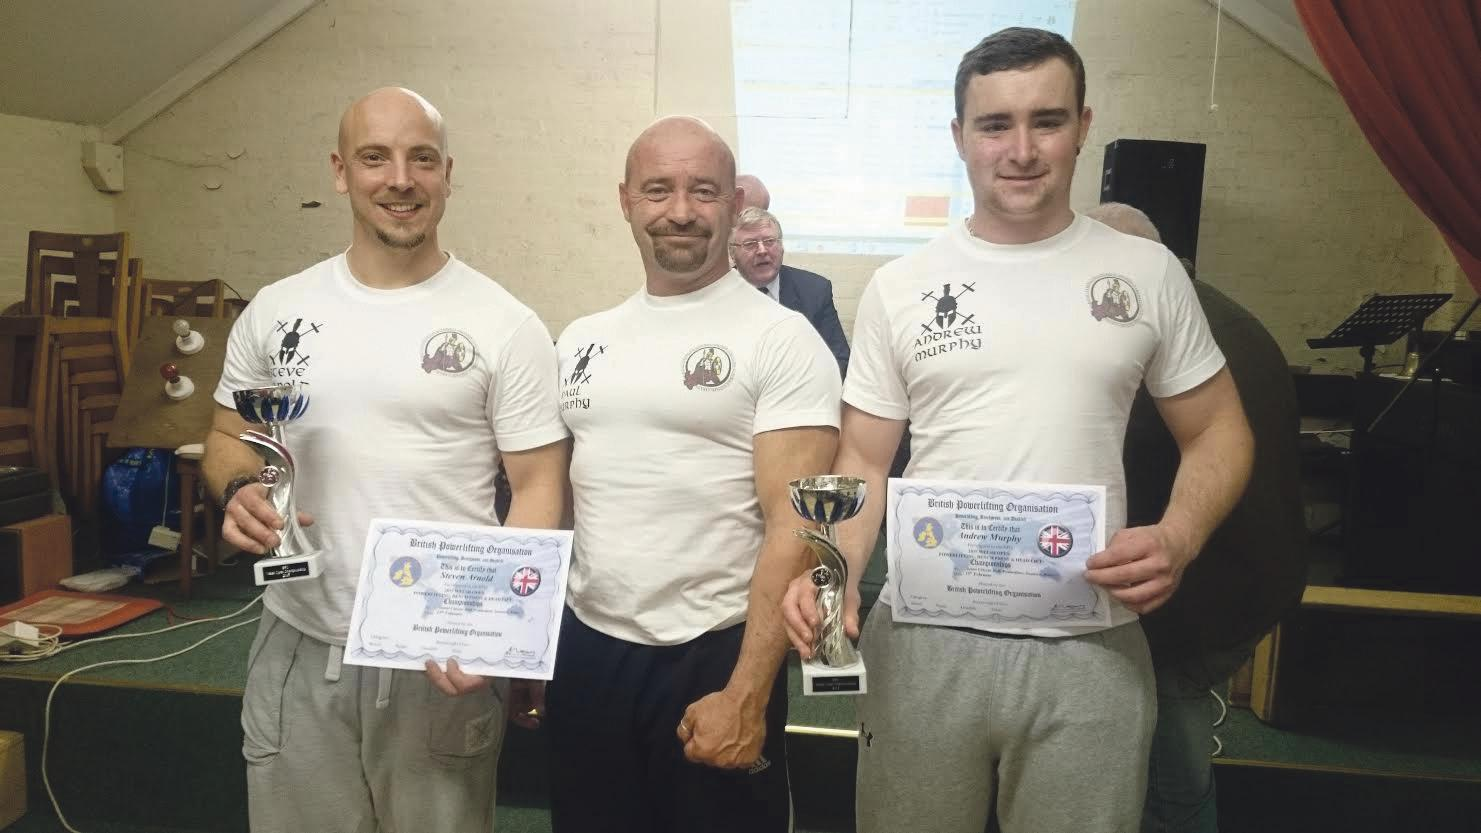 Powerlifters: Steve Arnold (left), coach and multiple world champion Paul Murphy (middle) and Andrew Murphy (right) with trophies.